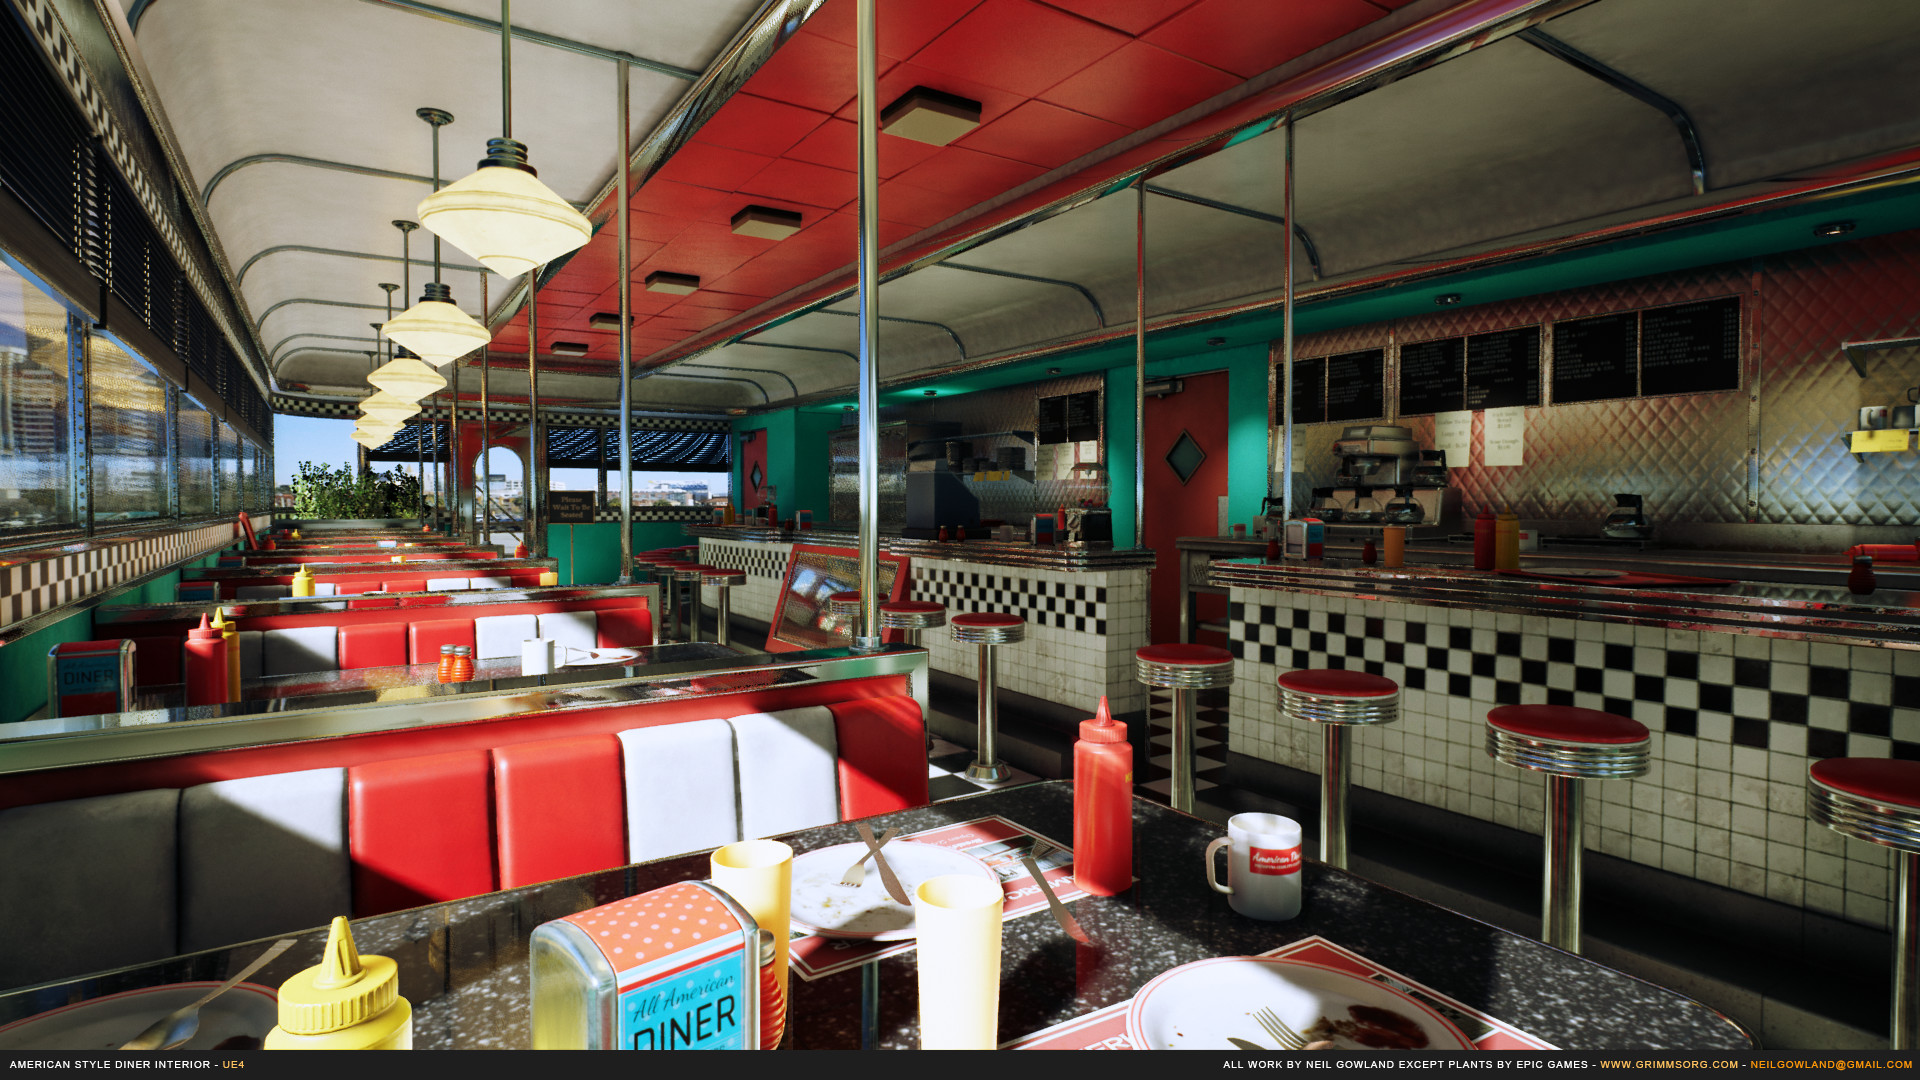 Neil gowland americanstylediner screenshot 01